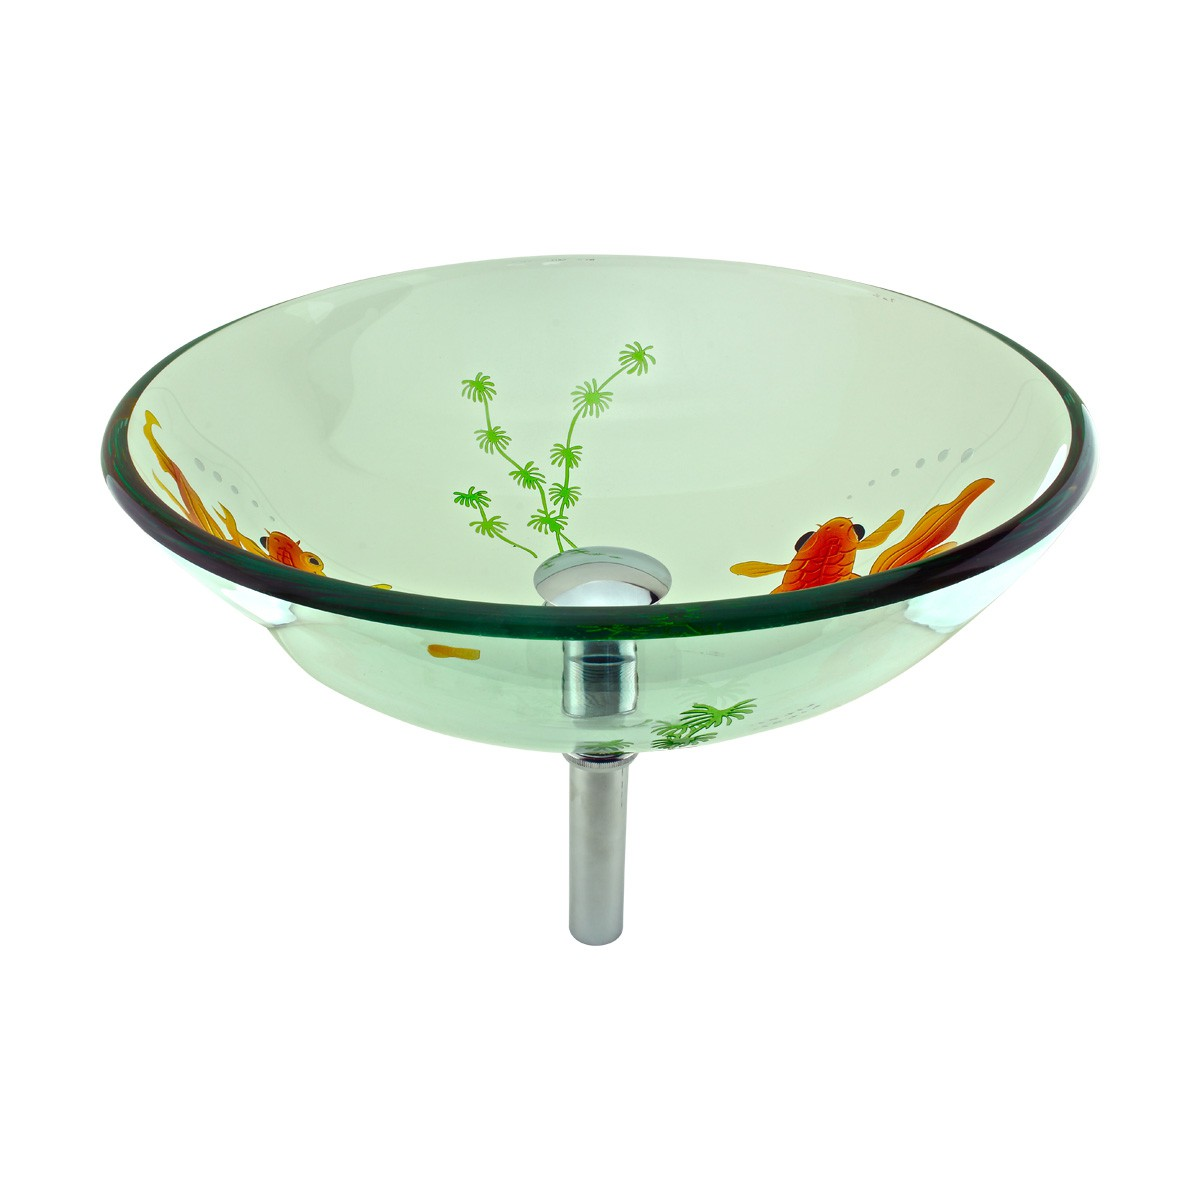 Tempered Glass Vessel Sink With Drain, Clear Single Layer With Koi Fish  Painted